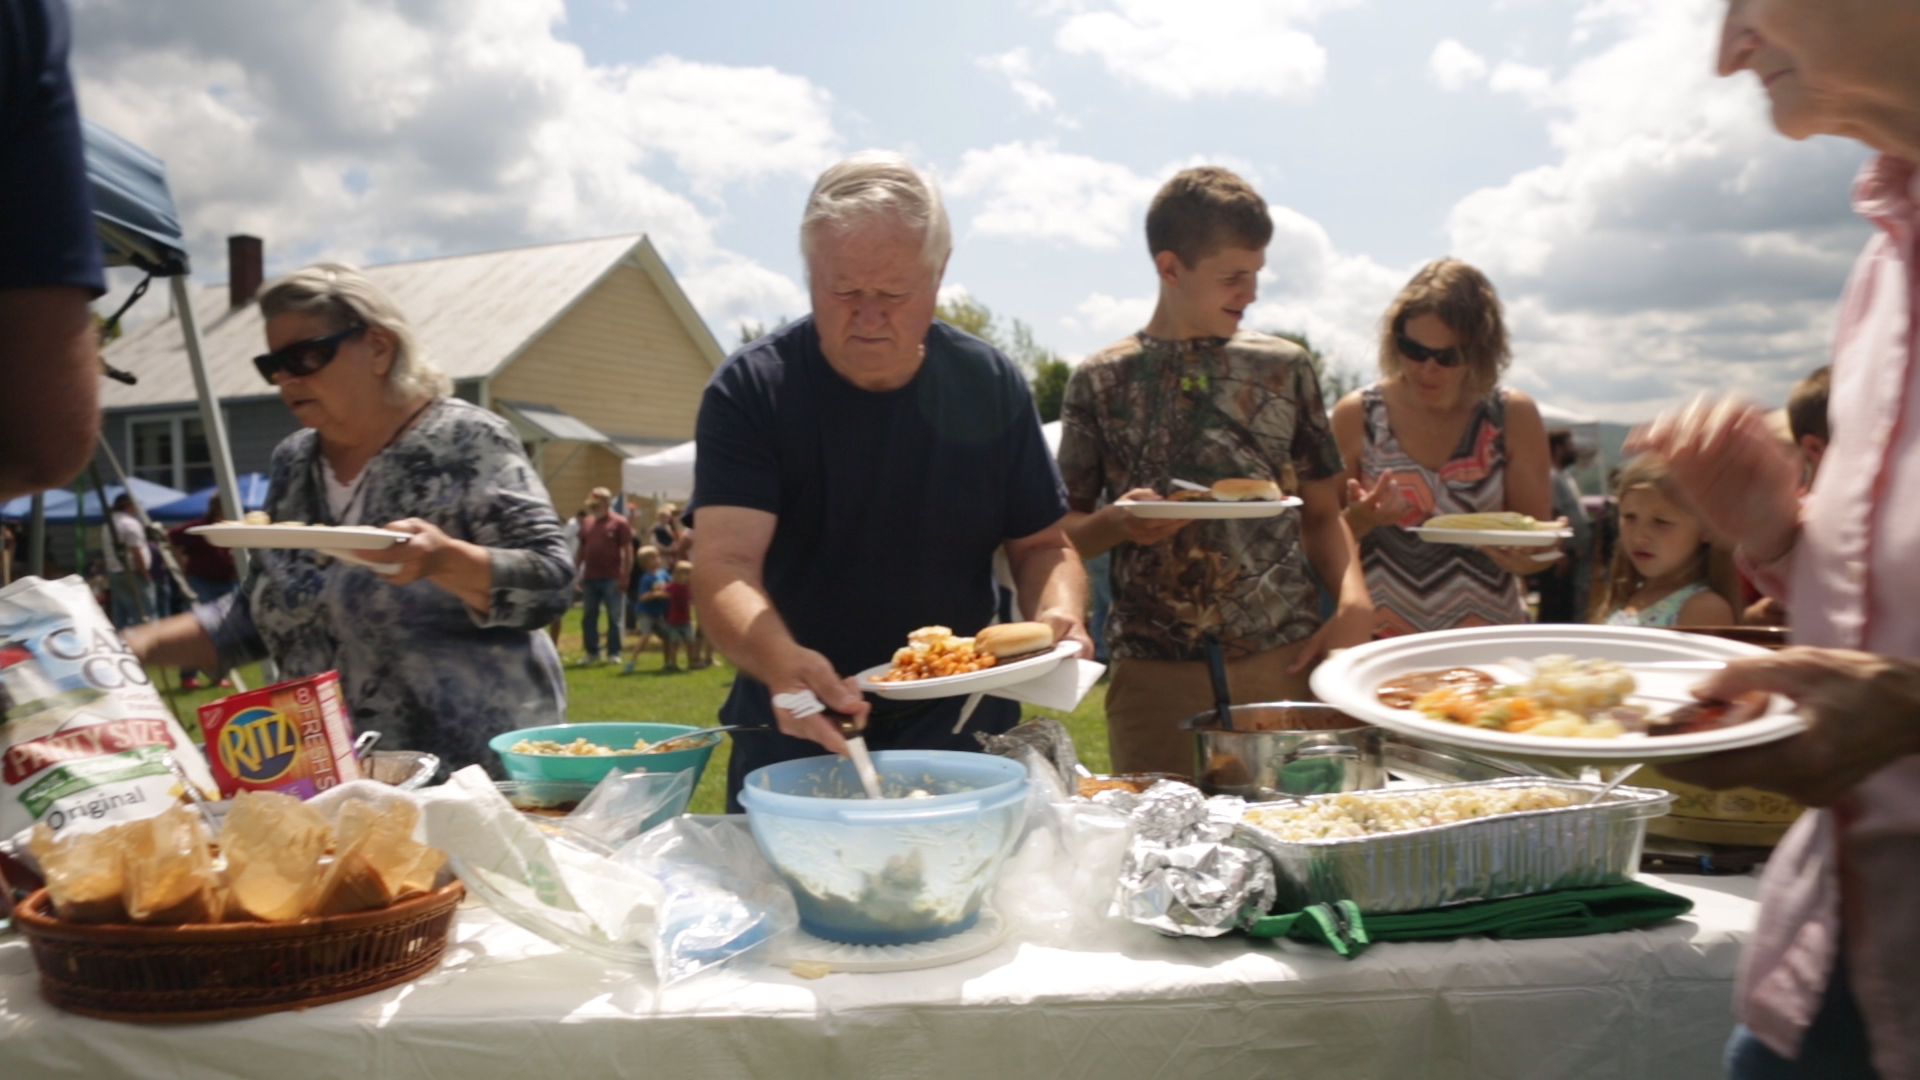 Riverside Farmers Market and Town Picnic